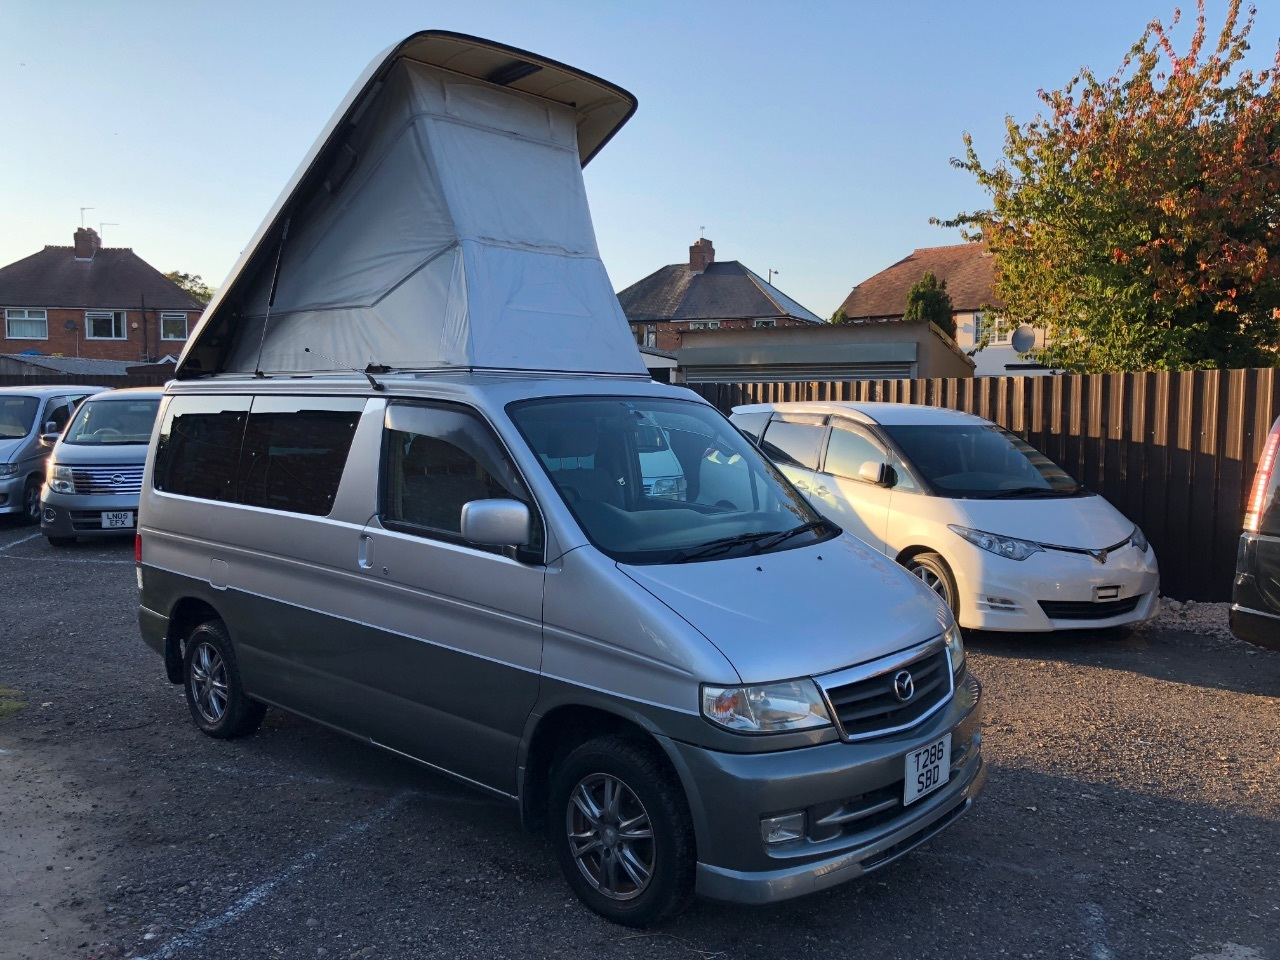 Mazda Bongo Friended 2.5 turbo diesel fresh import MPV Diesel Silver